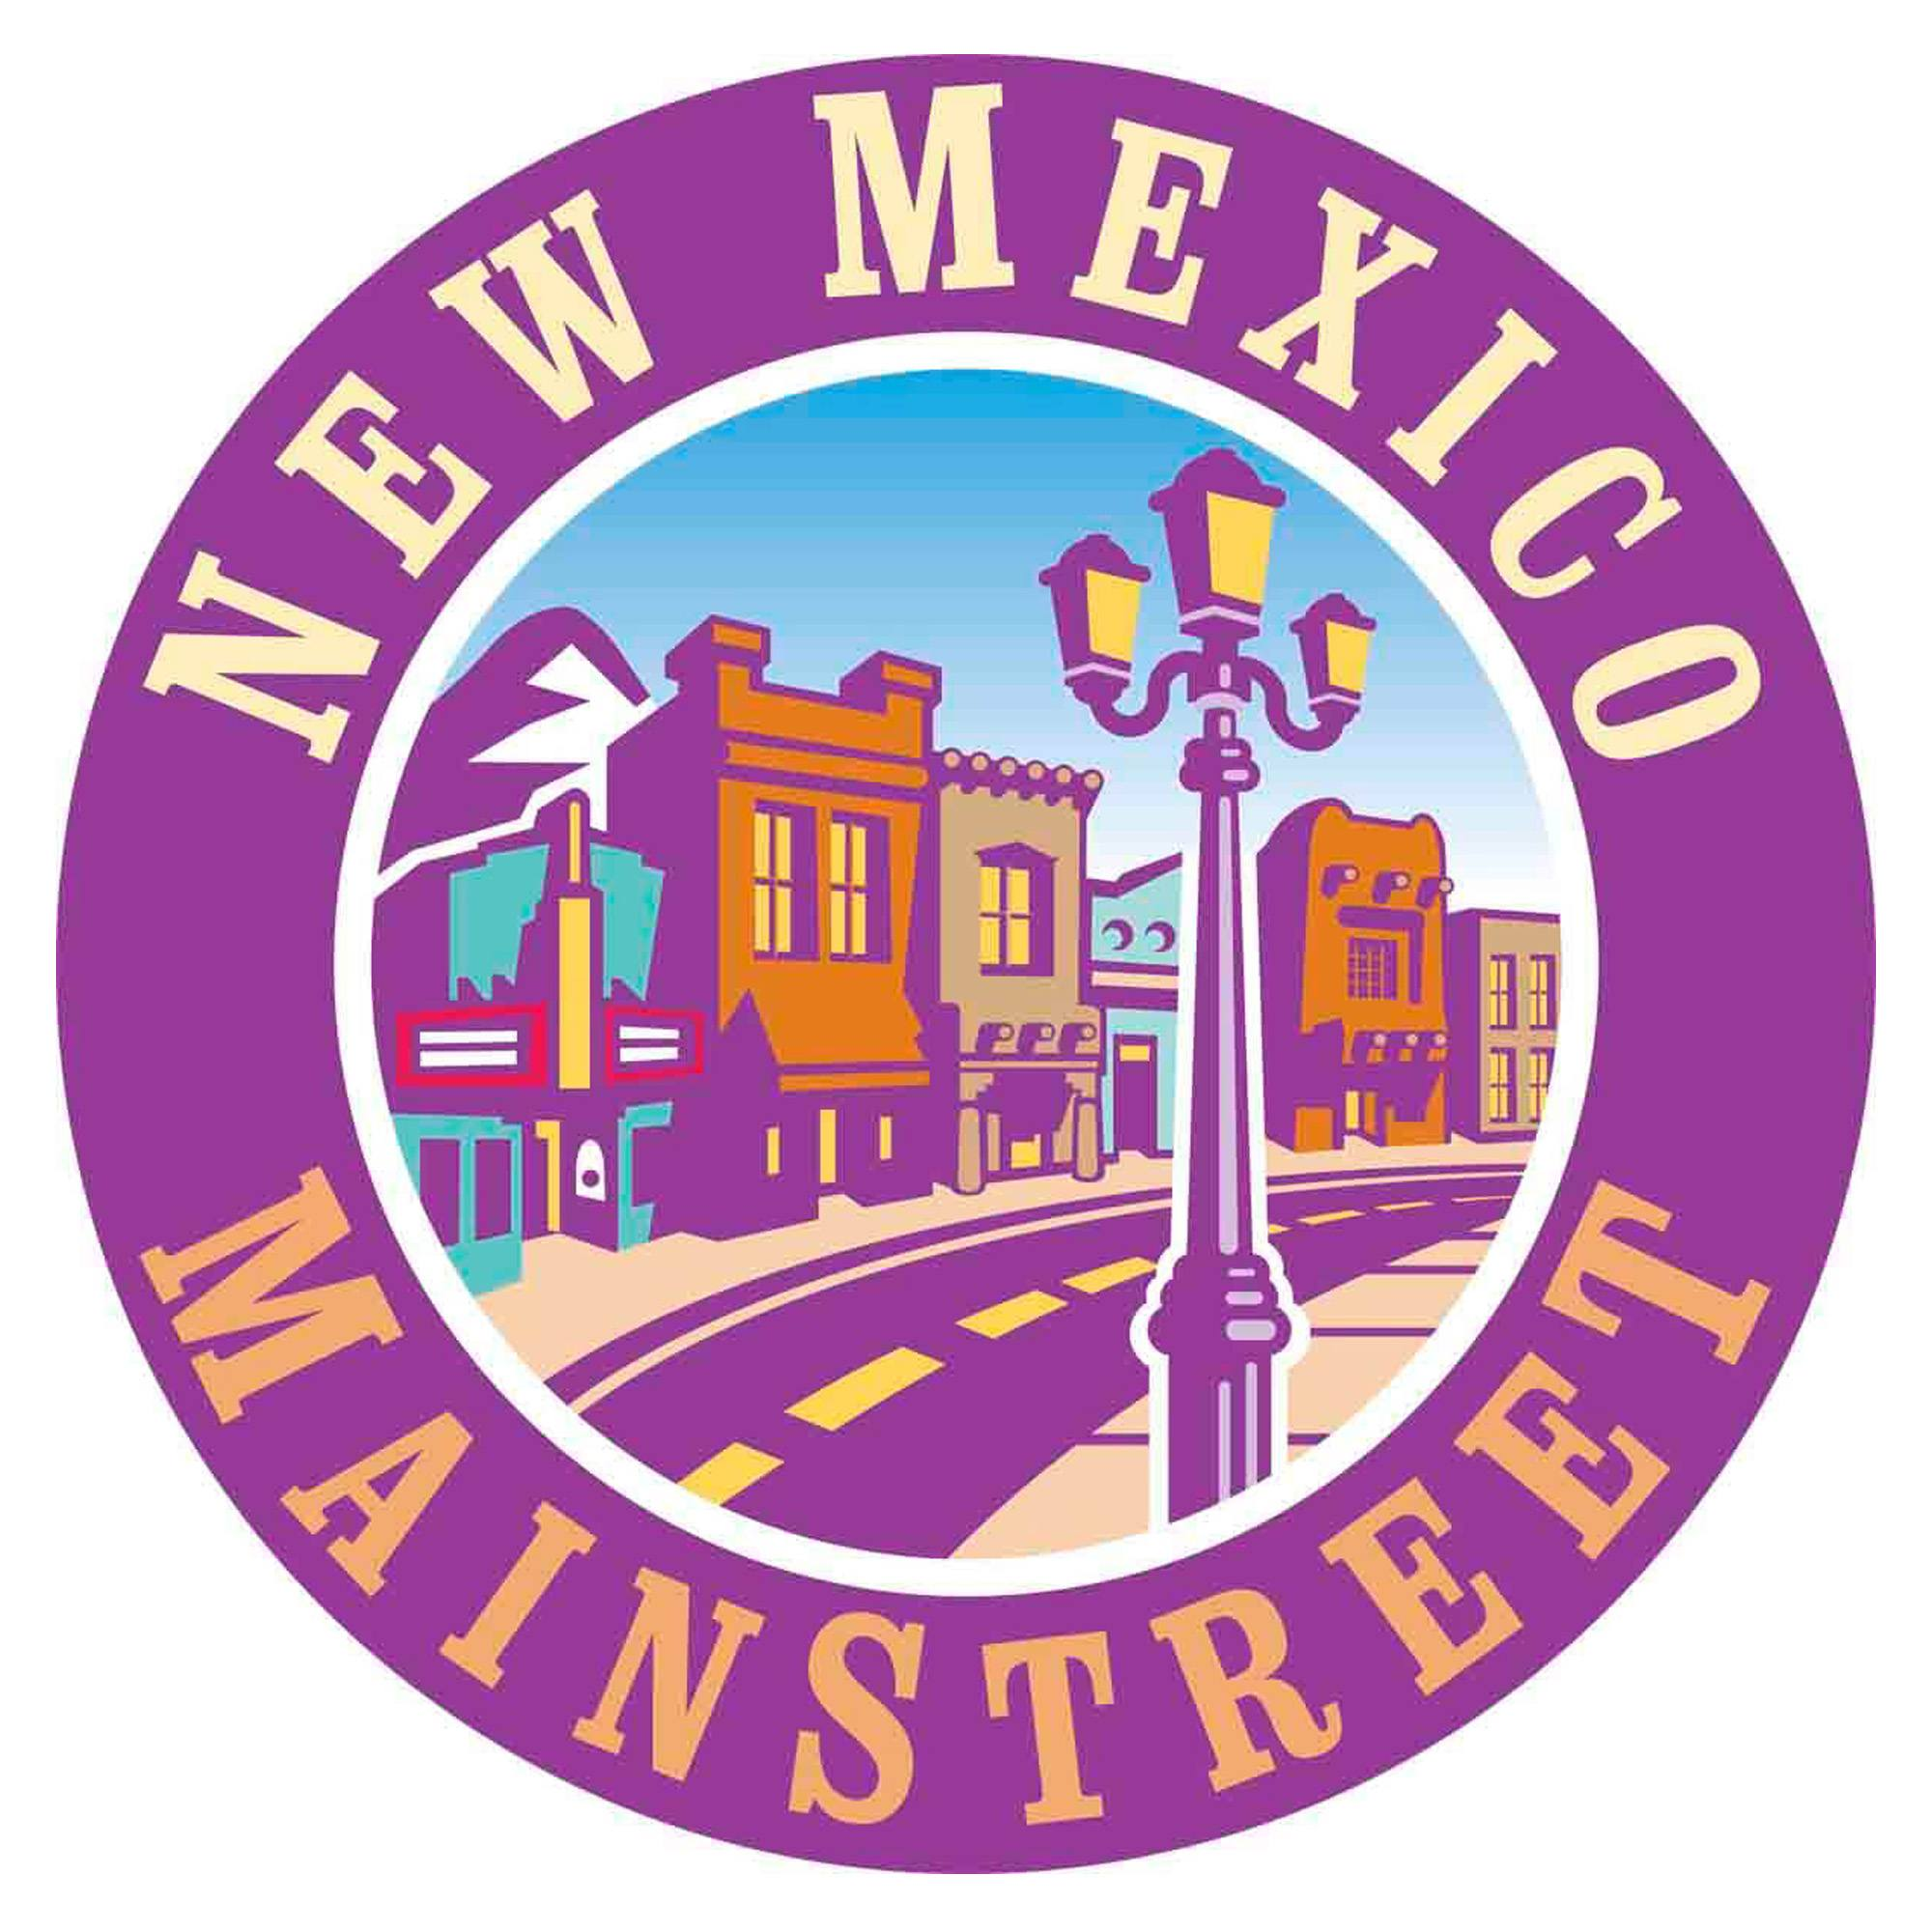 What is New Mexico MainStreet?